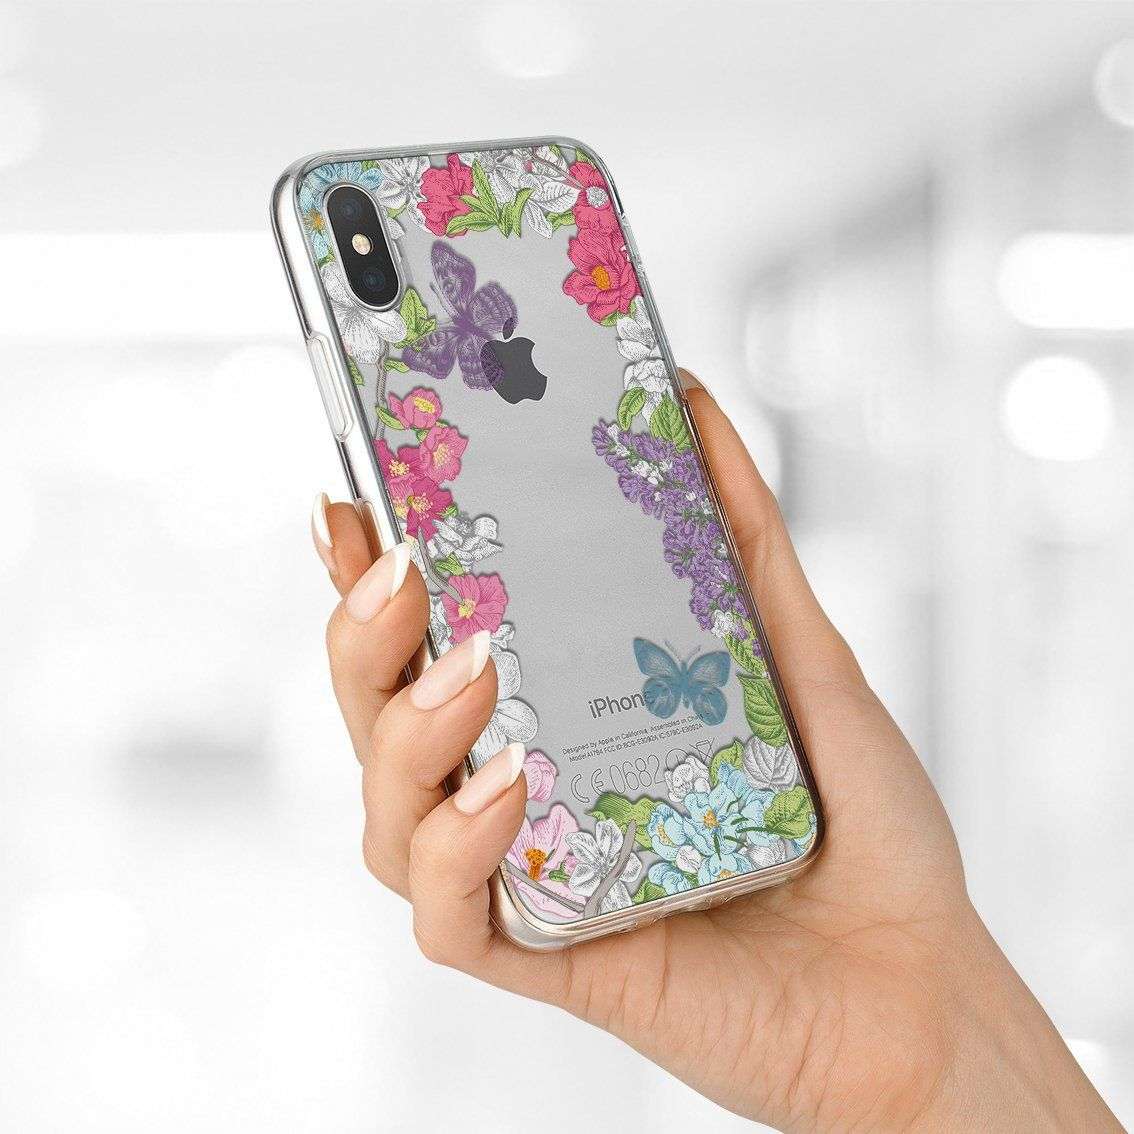 Butterfly iphone xs max case iphone 8 plus case galaxy a8